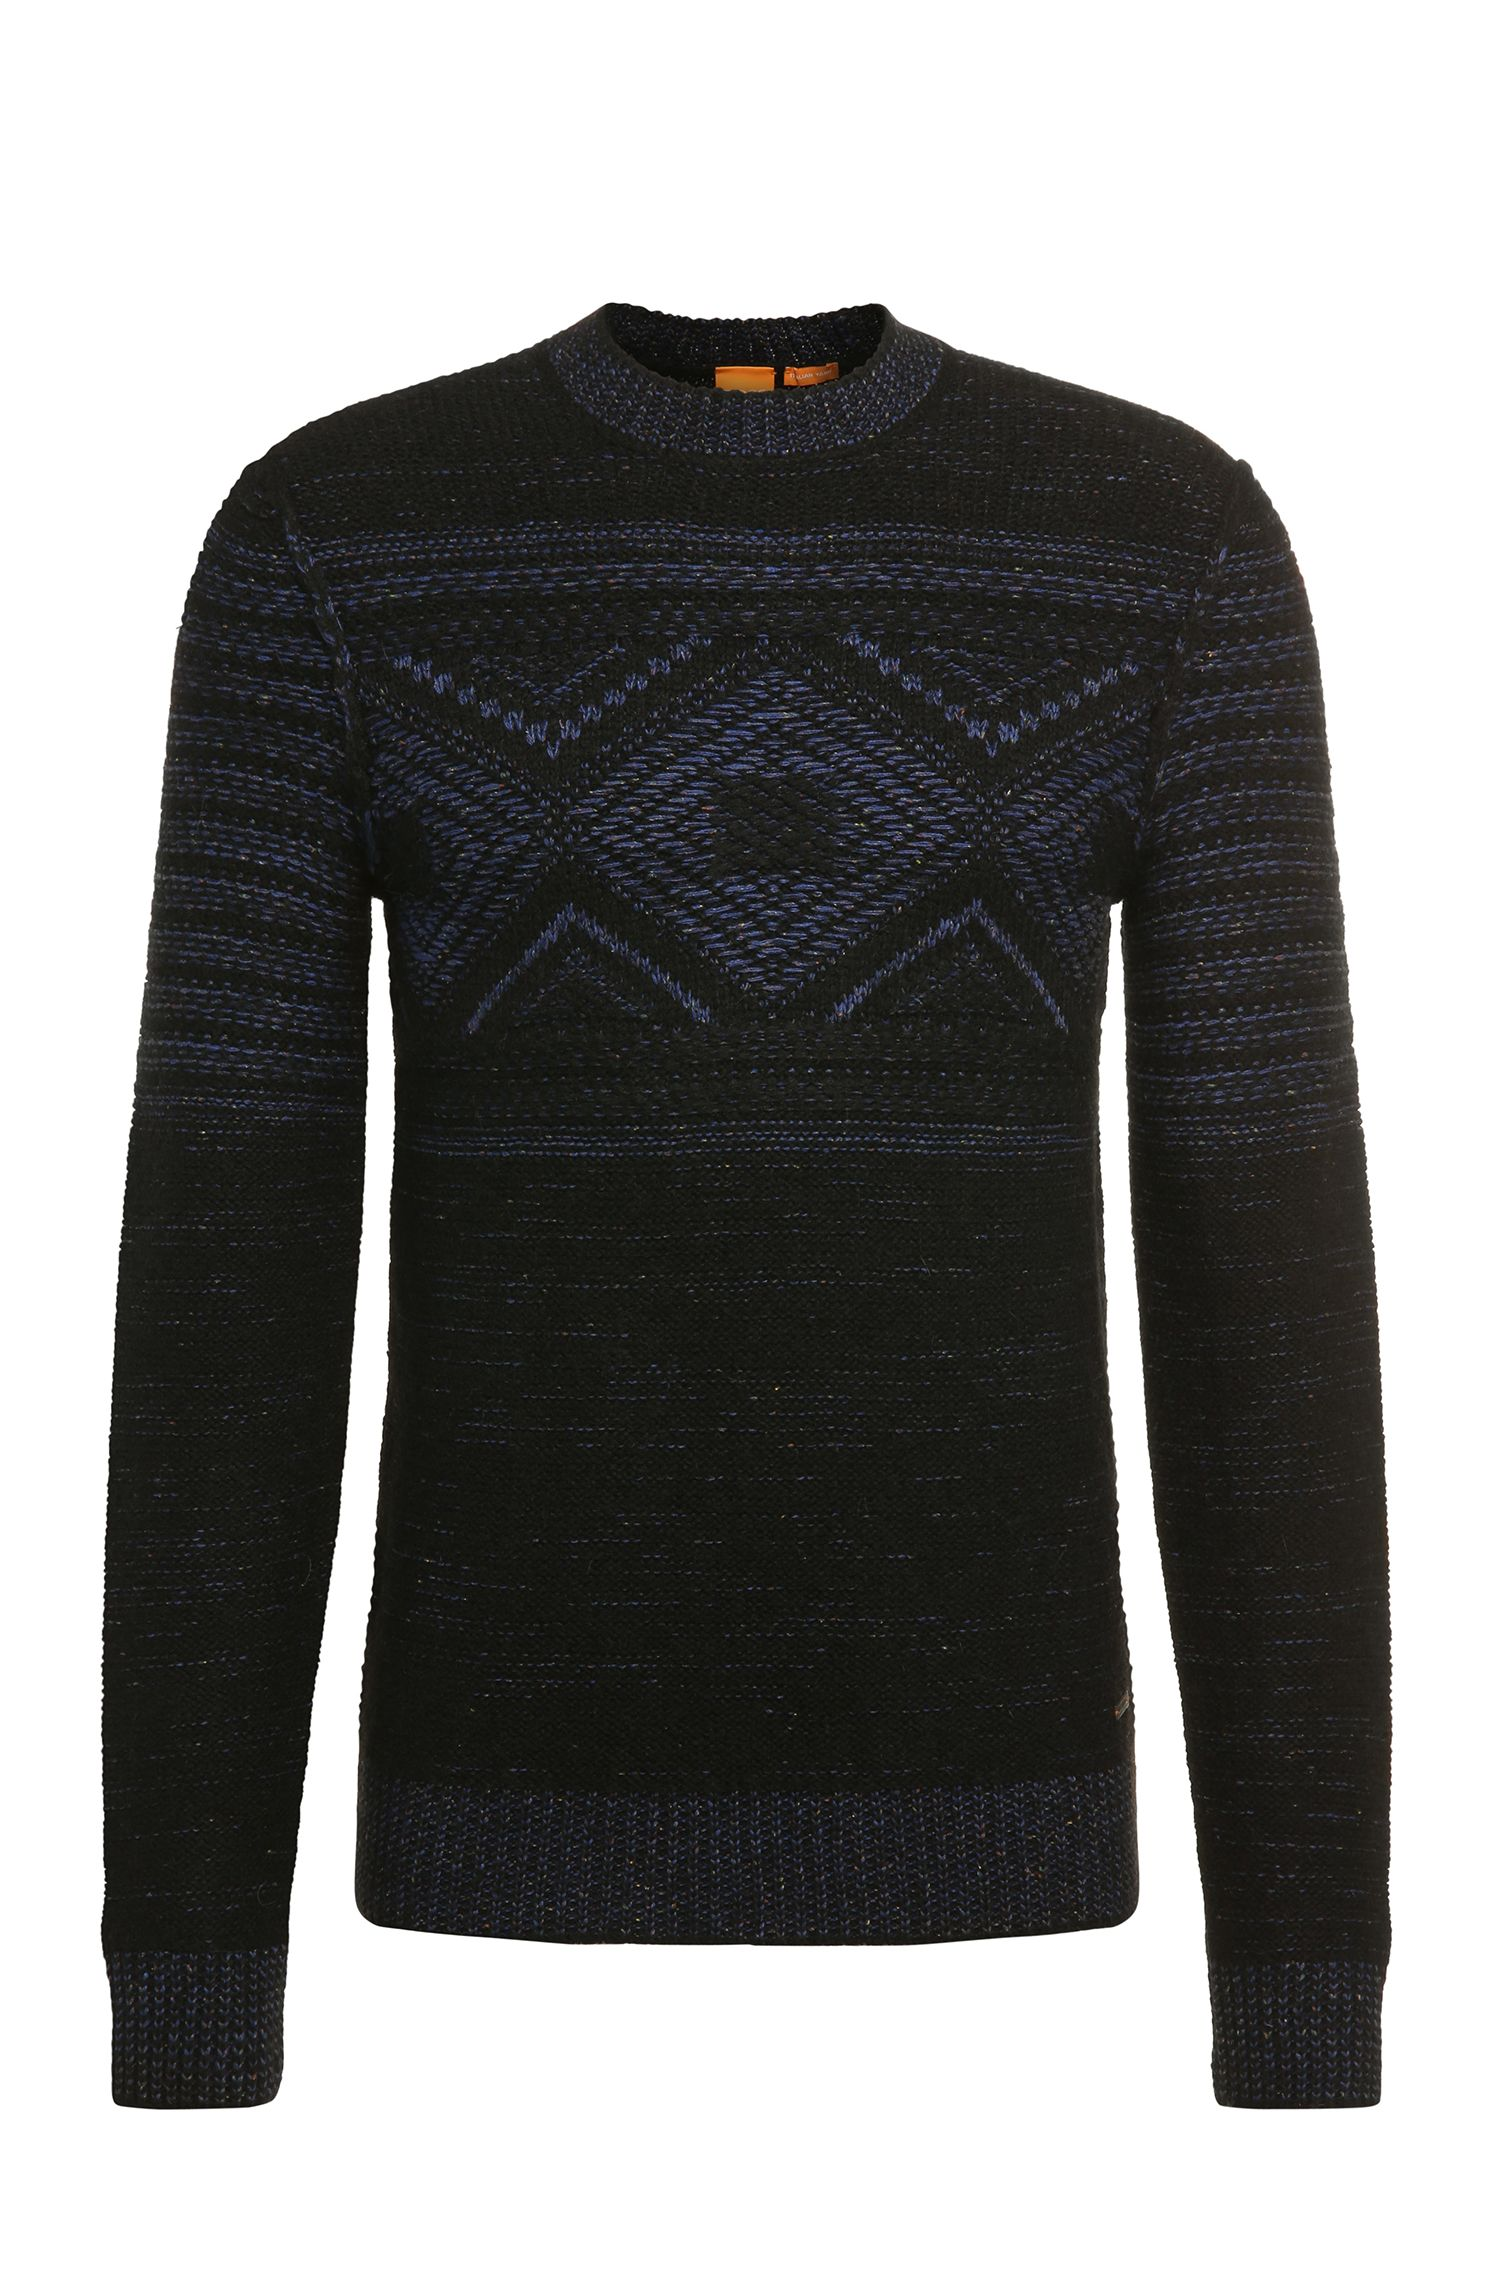 Slim-fit sweater in fabric blend with wool, alpaca, viscose and silk: 'Kordejan'